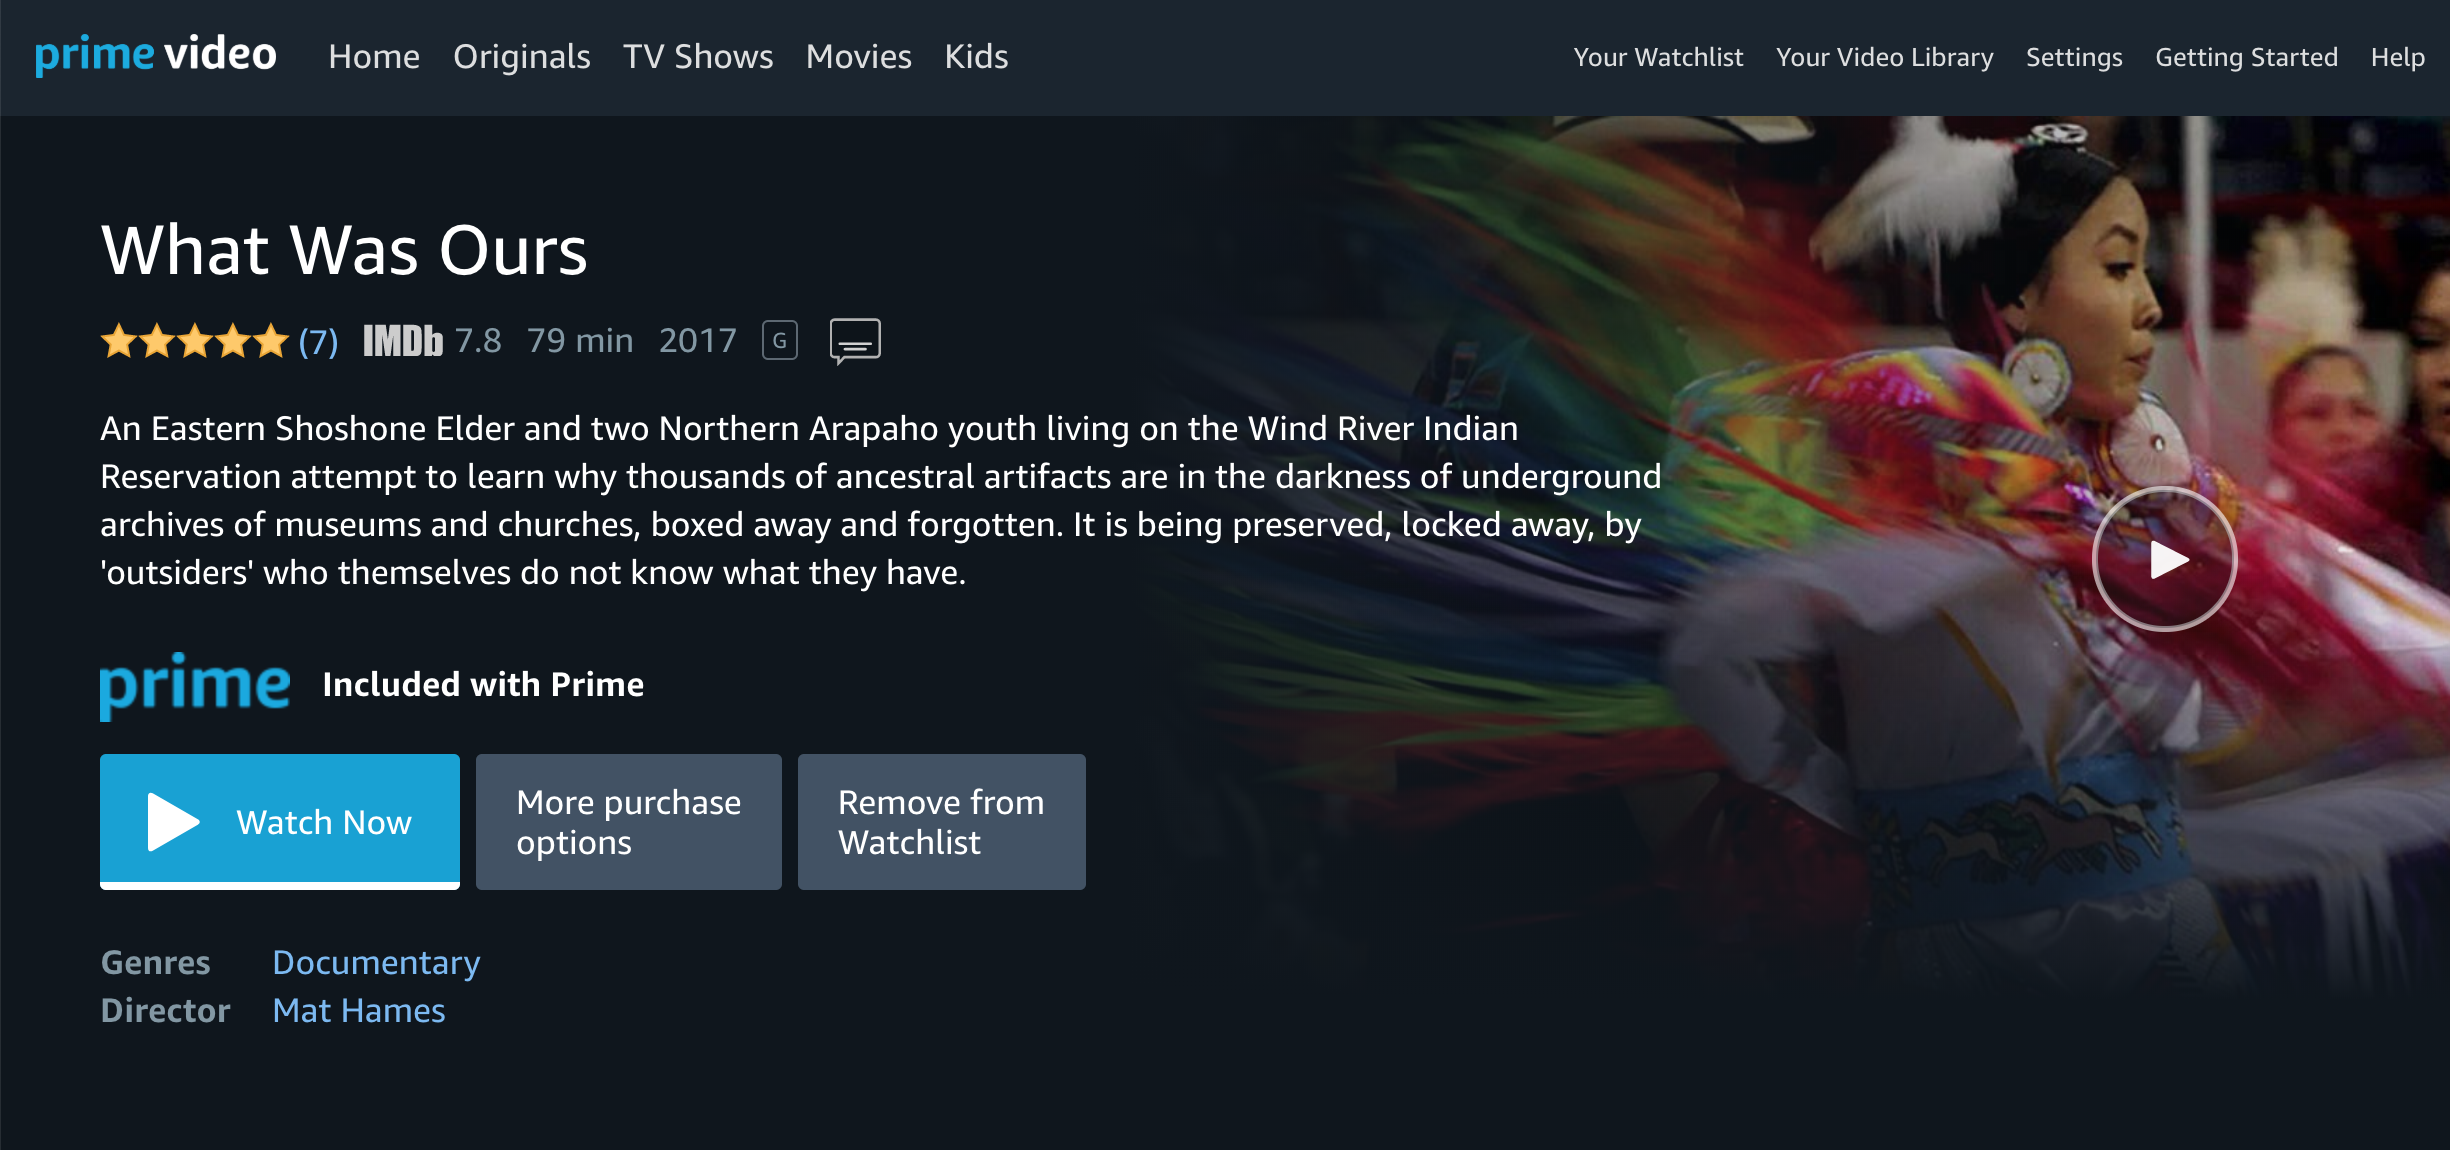 Click anywhere on the image above to watch on Prime Video now.